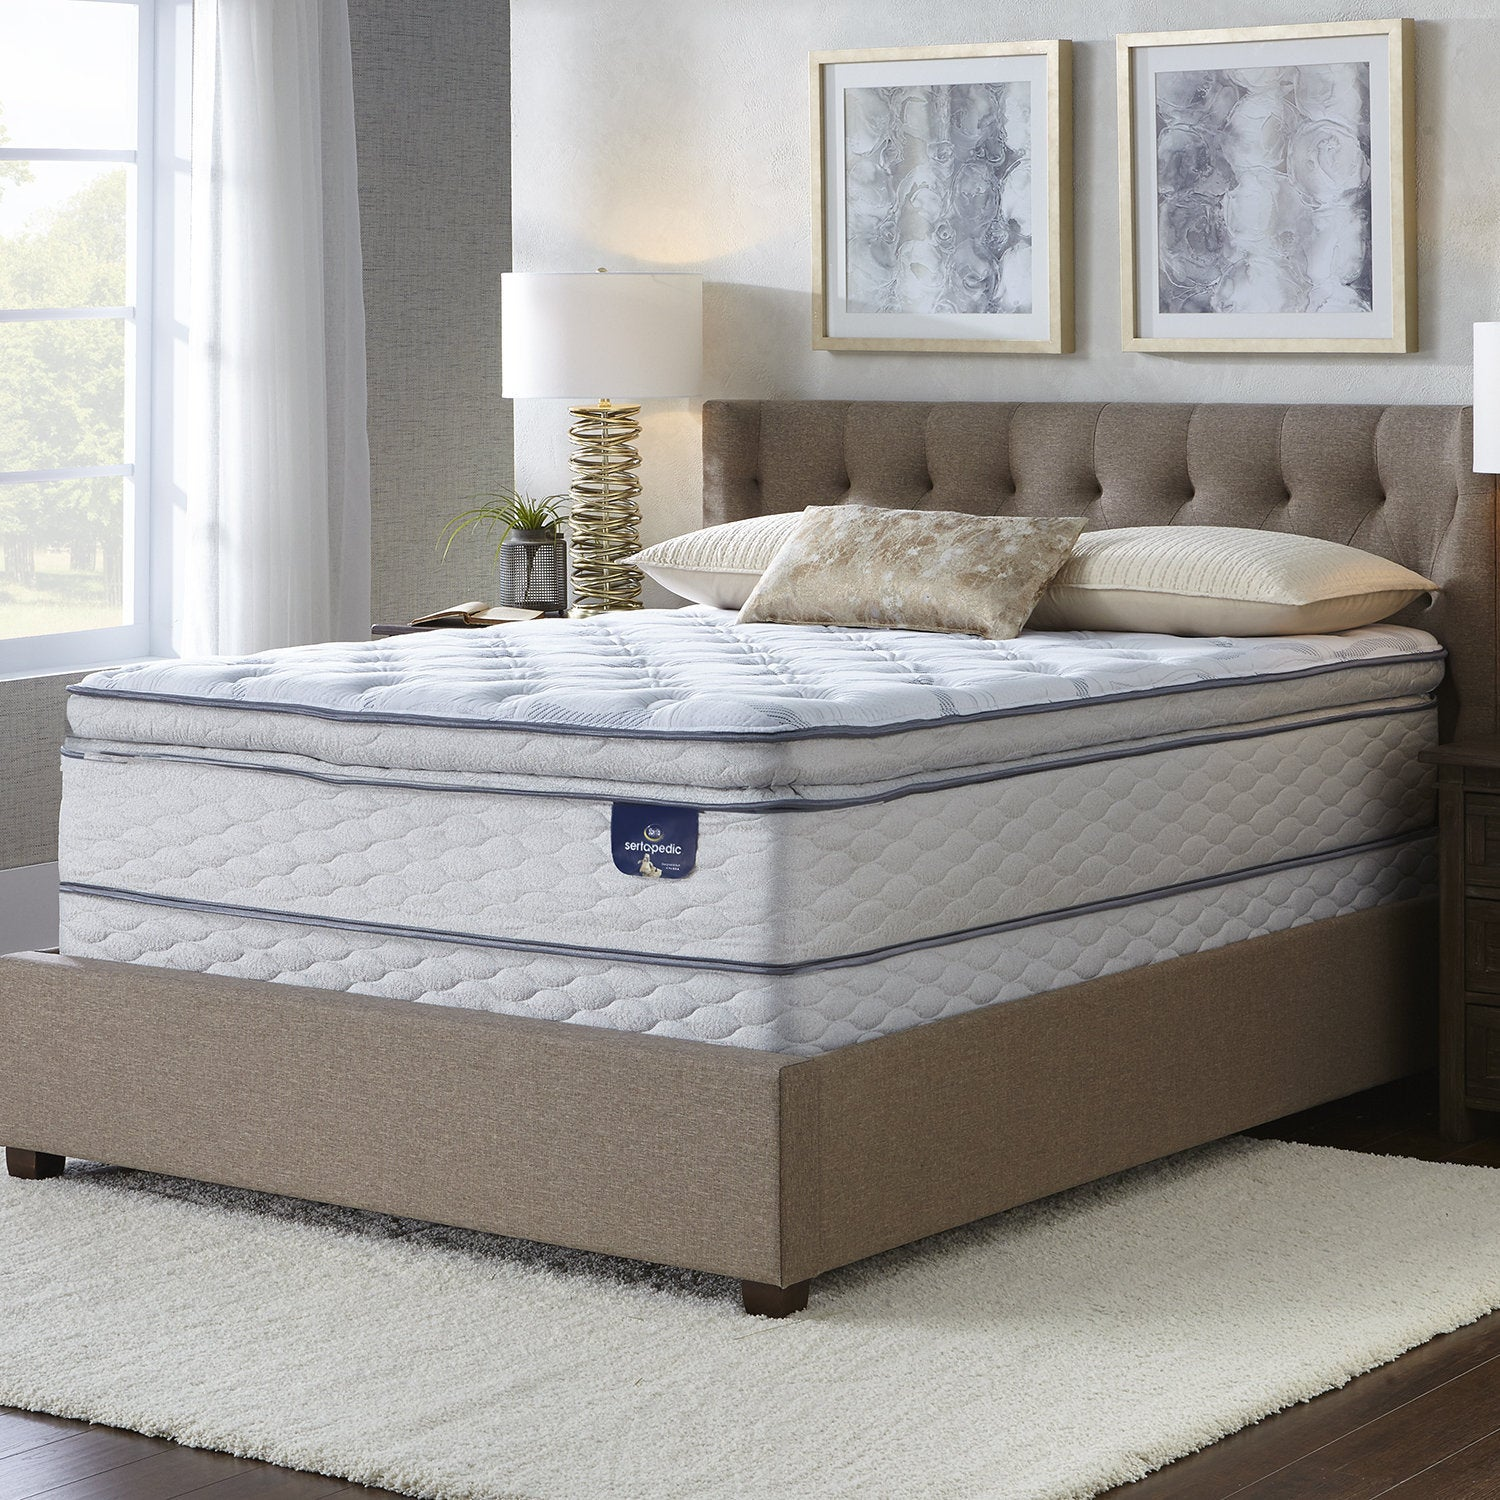 foam memory mattresses pillow getmojito top reviews hotel mattress topper